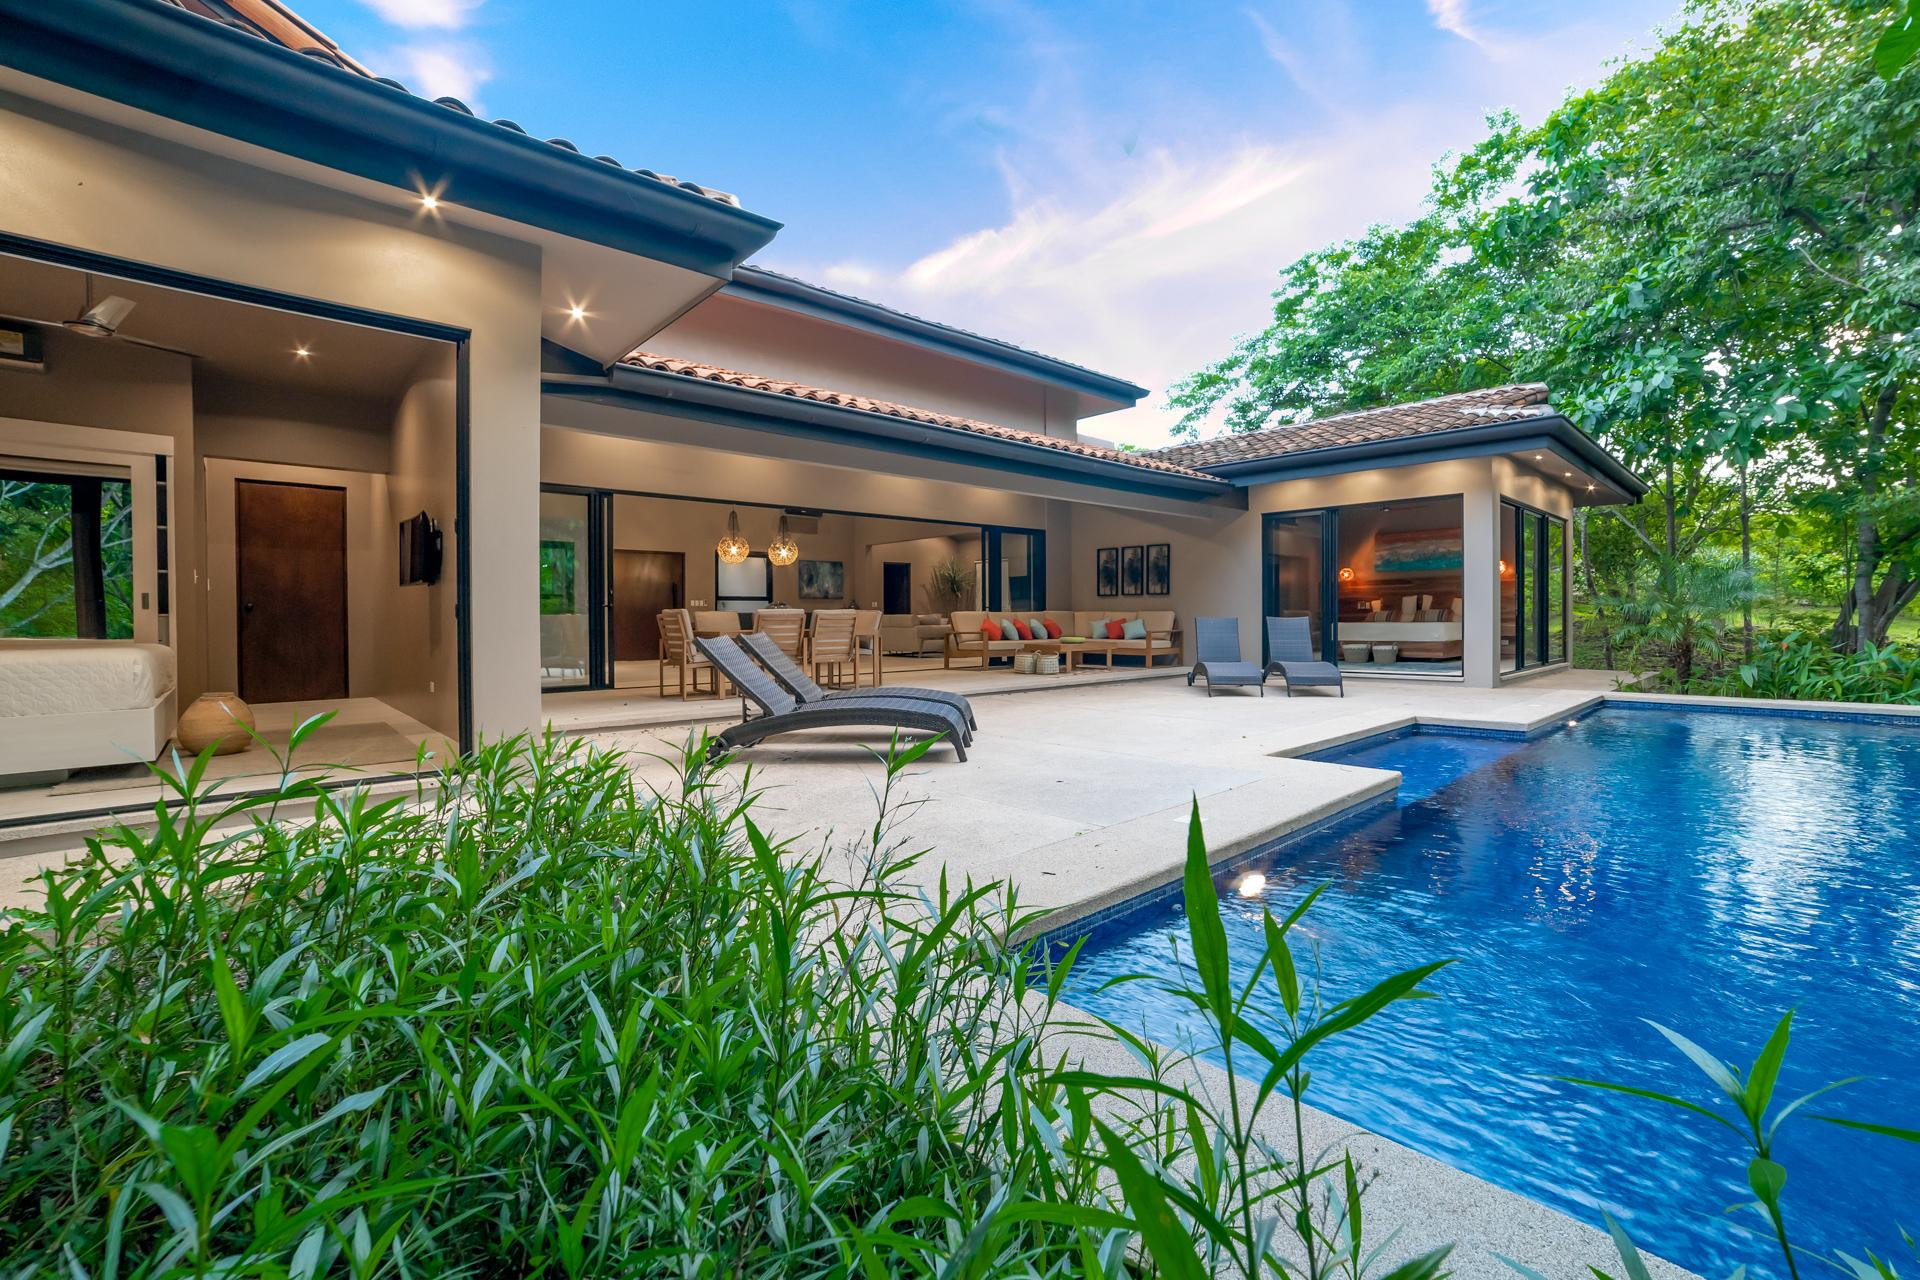 Backyard luxury surrounded by